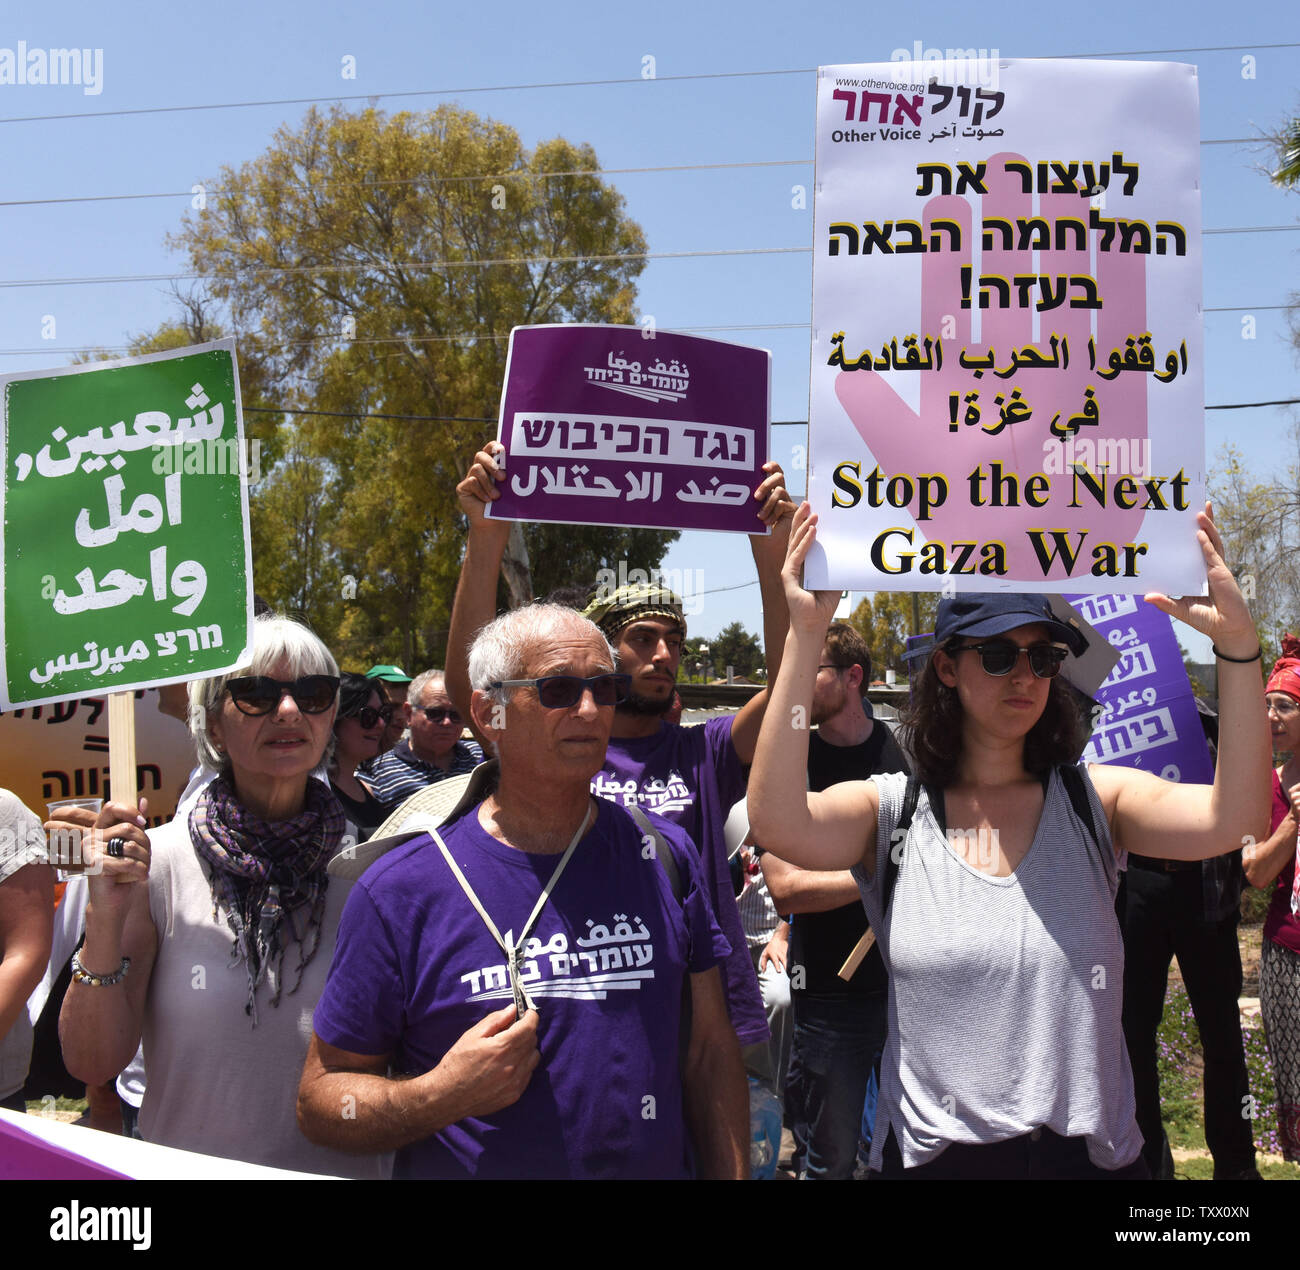 Israeli protesters hold signs calling on the government to stop the bloodshed of Palestinians on the Gaza border at a demonstration at  Yad Mordechai, Israel, near the Gaza Strip, May 18, 2018.  More than a hundred Palestinians have been killed by the Israeli army in protests along the Israel-Gaza border in recent weeks.   Photo by Debbie Hill/UPI - Stock Image